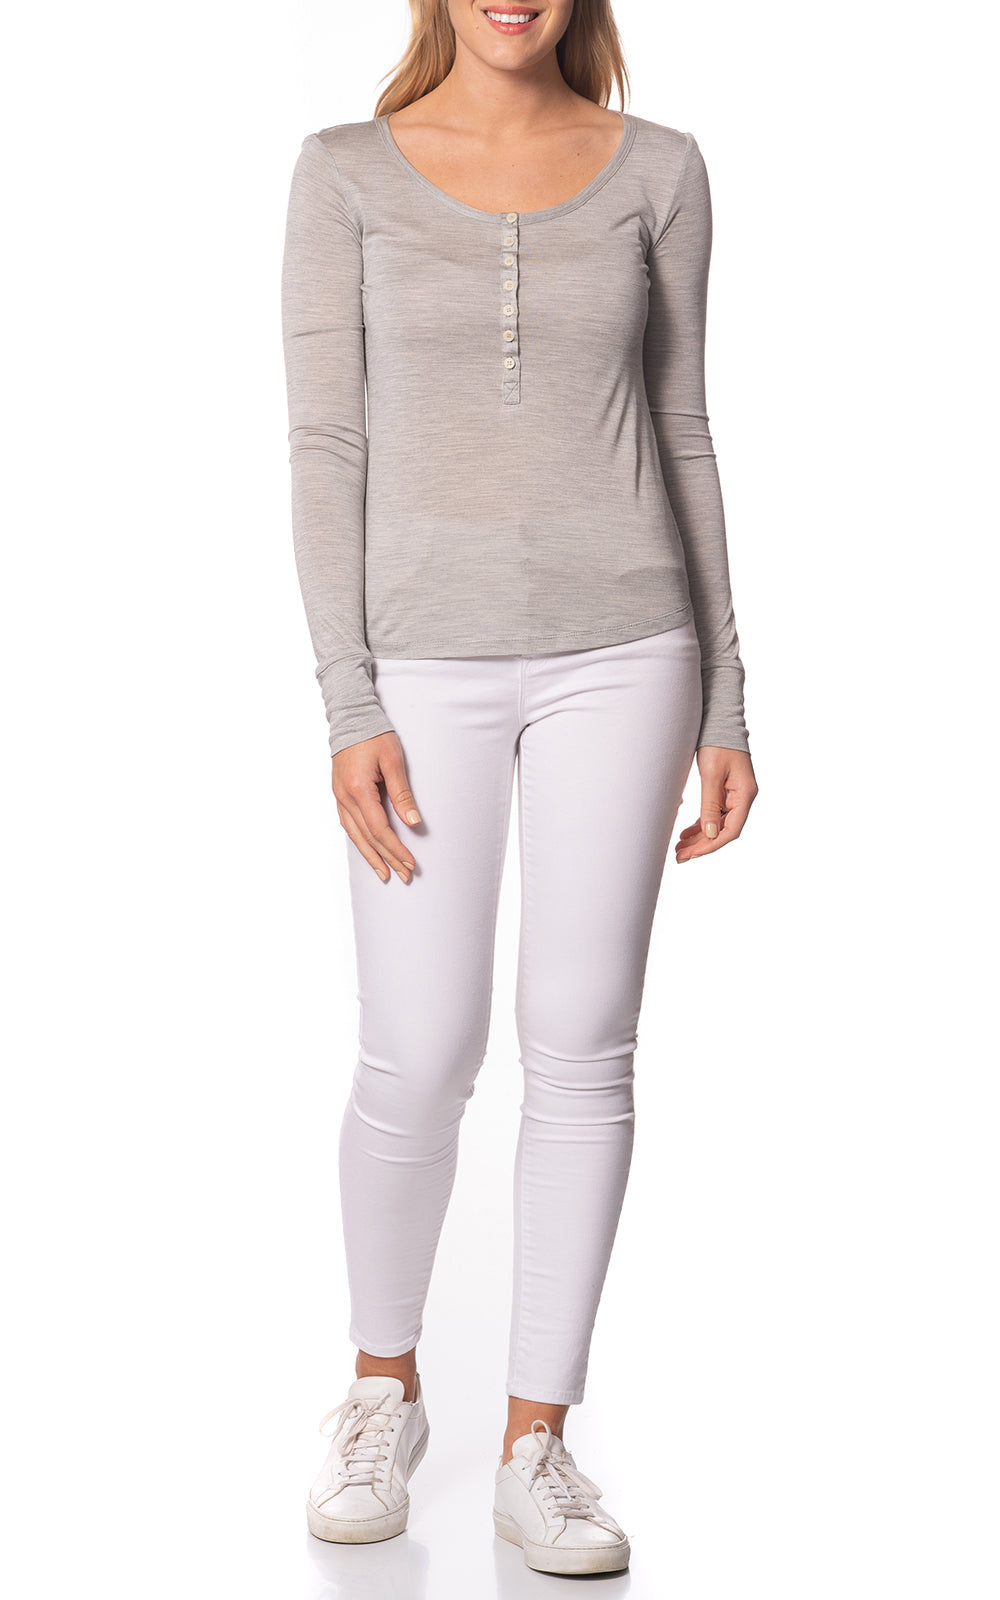 Louisa Everyday Henley Top Grey/Sand